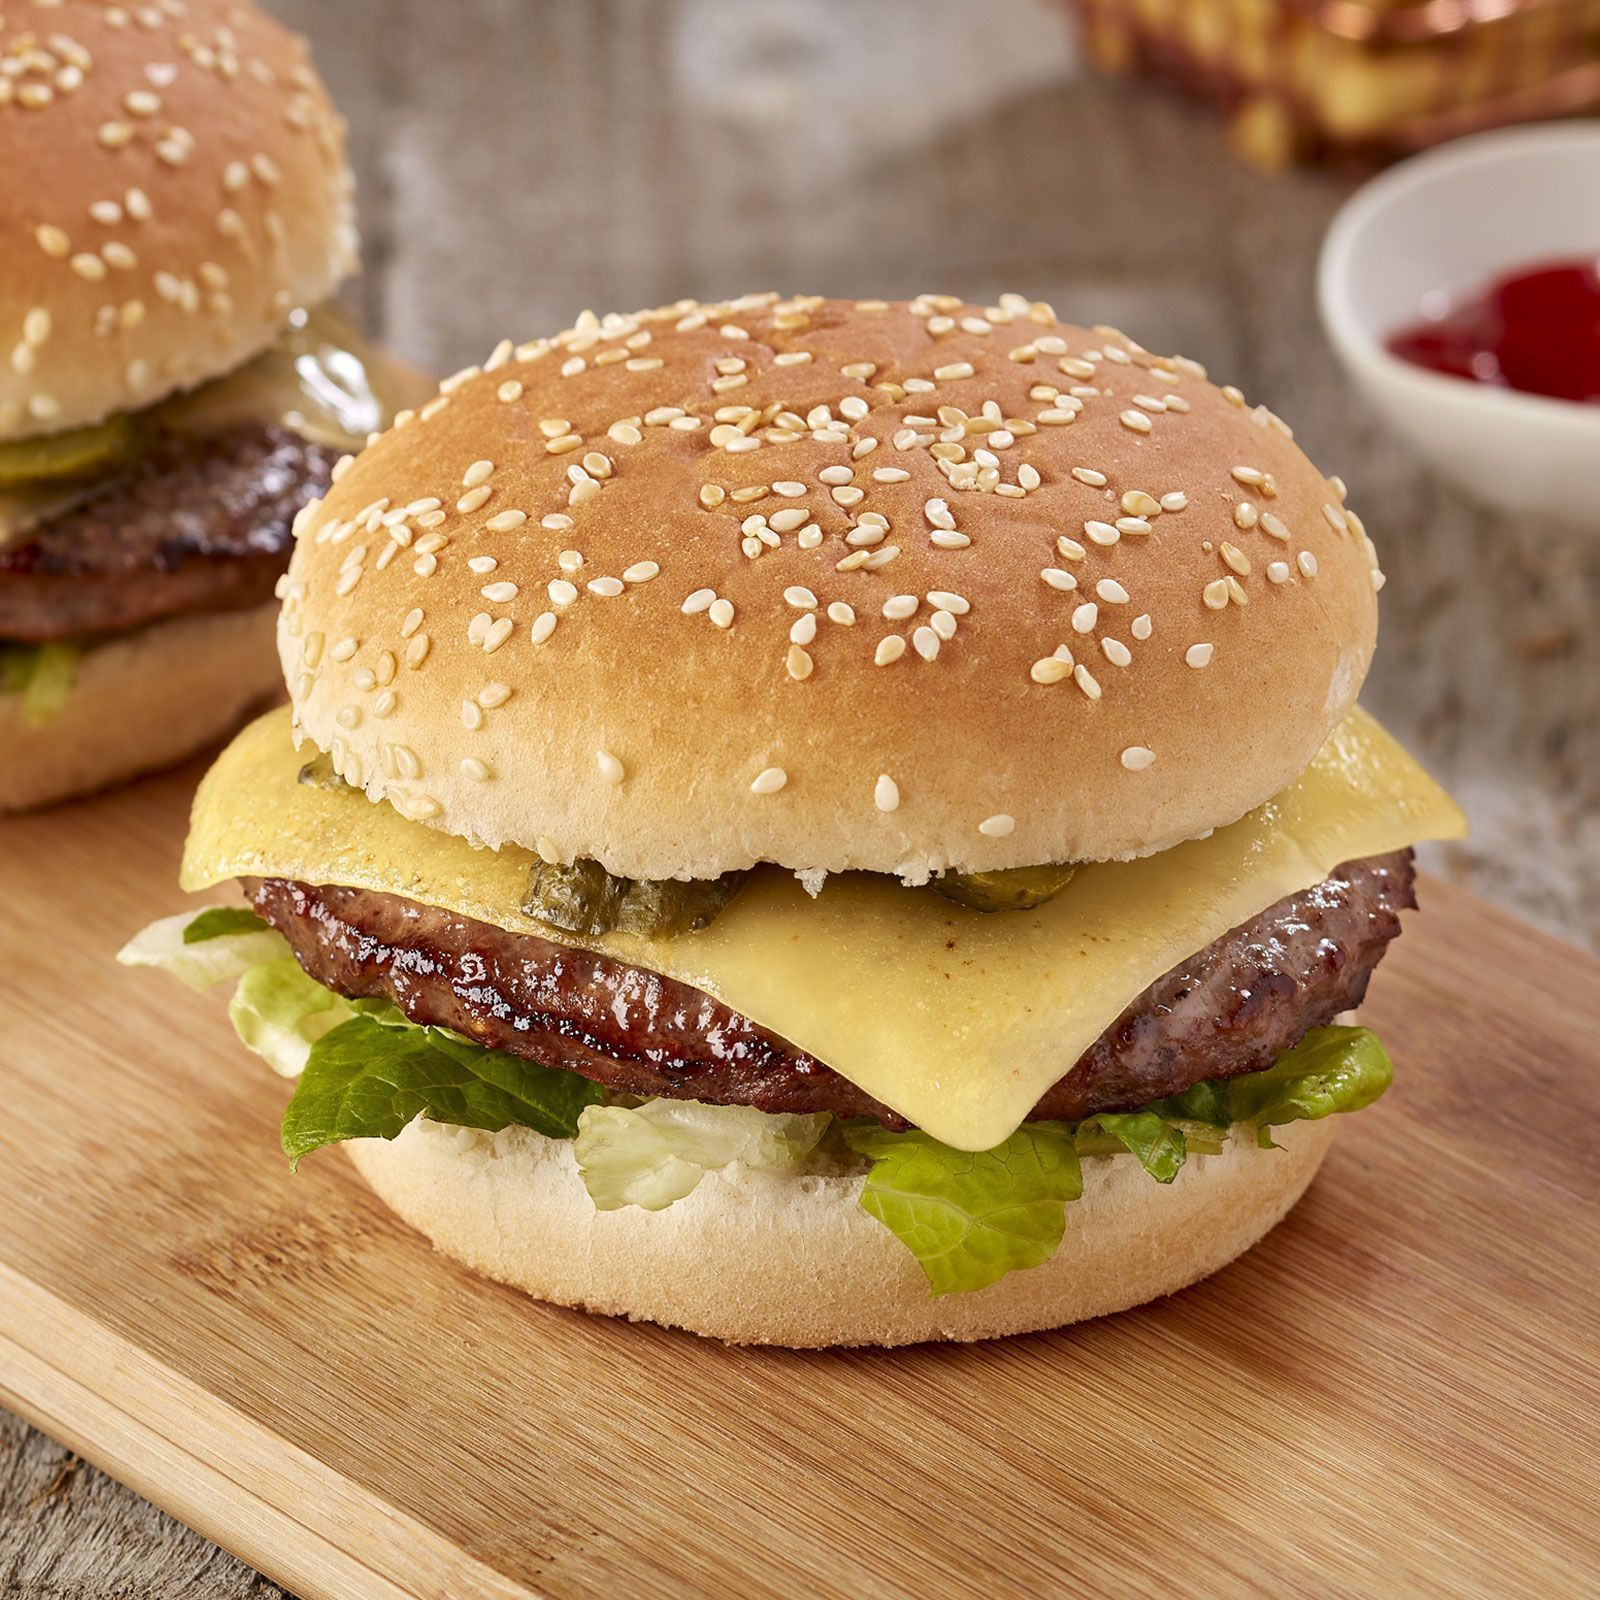 halal burger with cheese